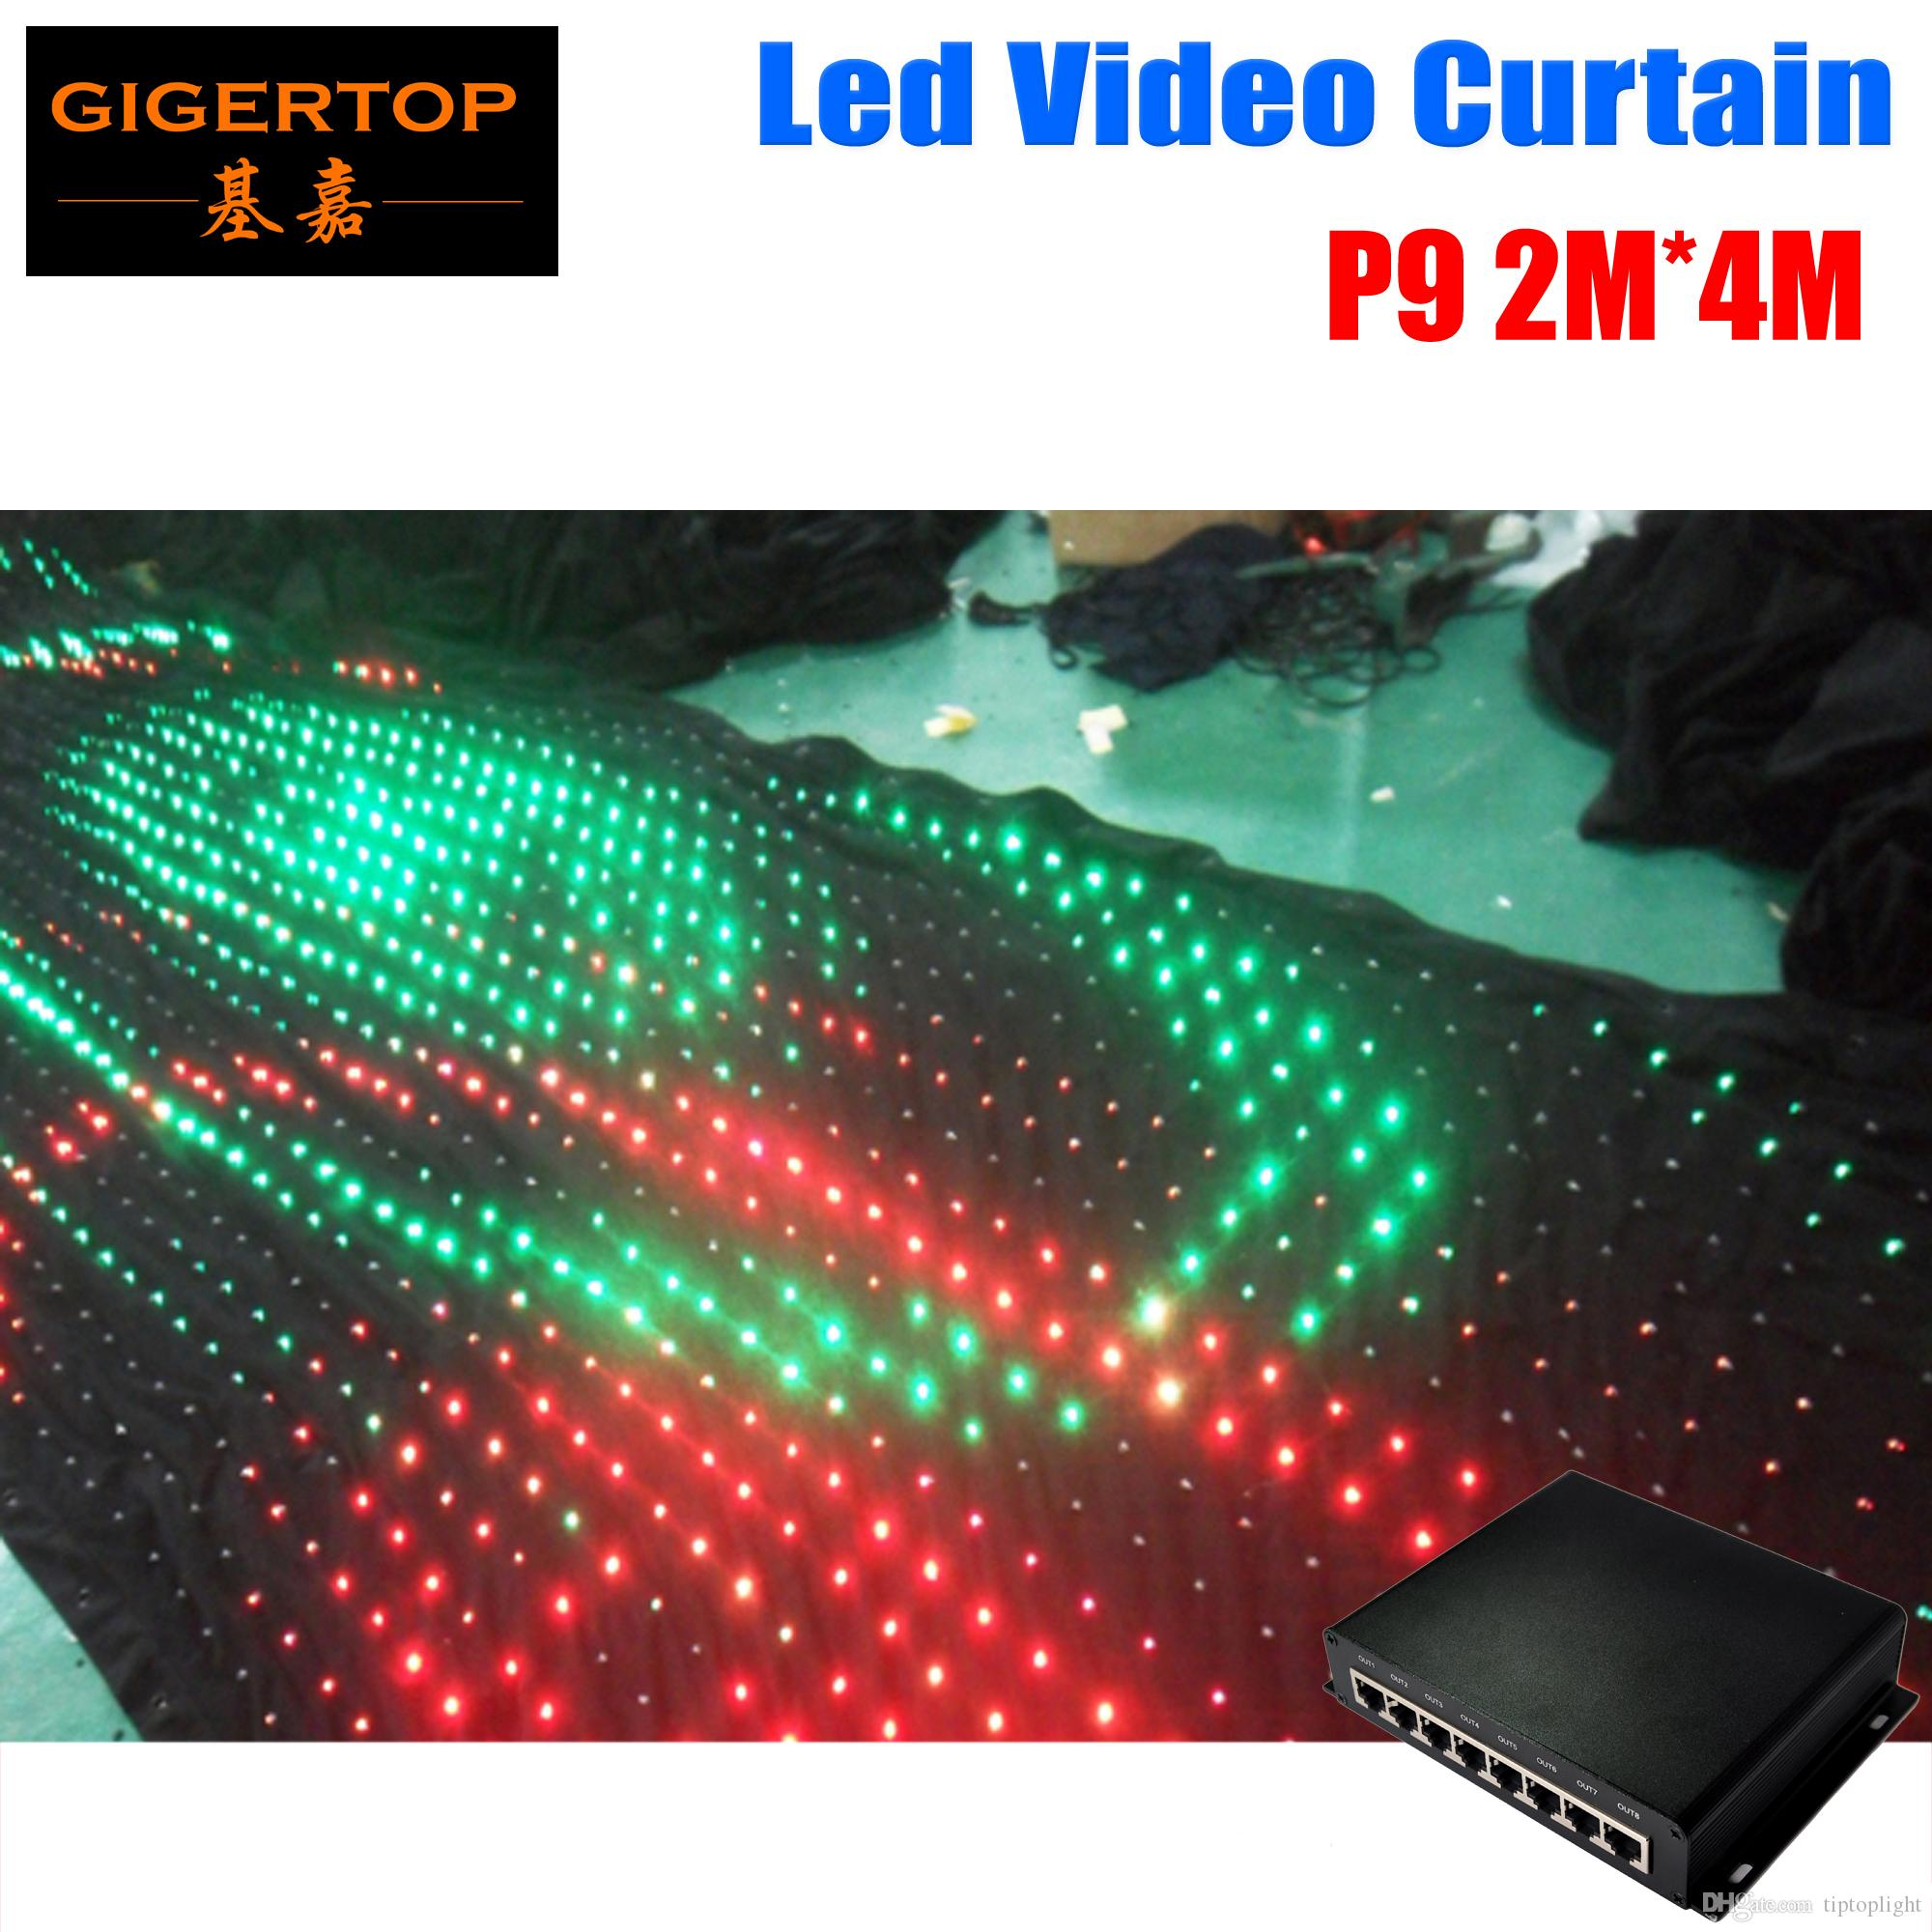 P9 2M*4M PC Mode Controller LED Video Curtain For Wedding Backdrop Customized Fireproof Light Curtain DJ Stage Background